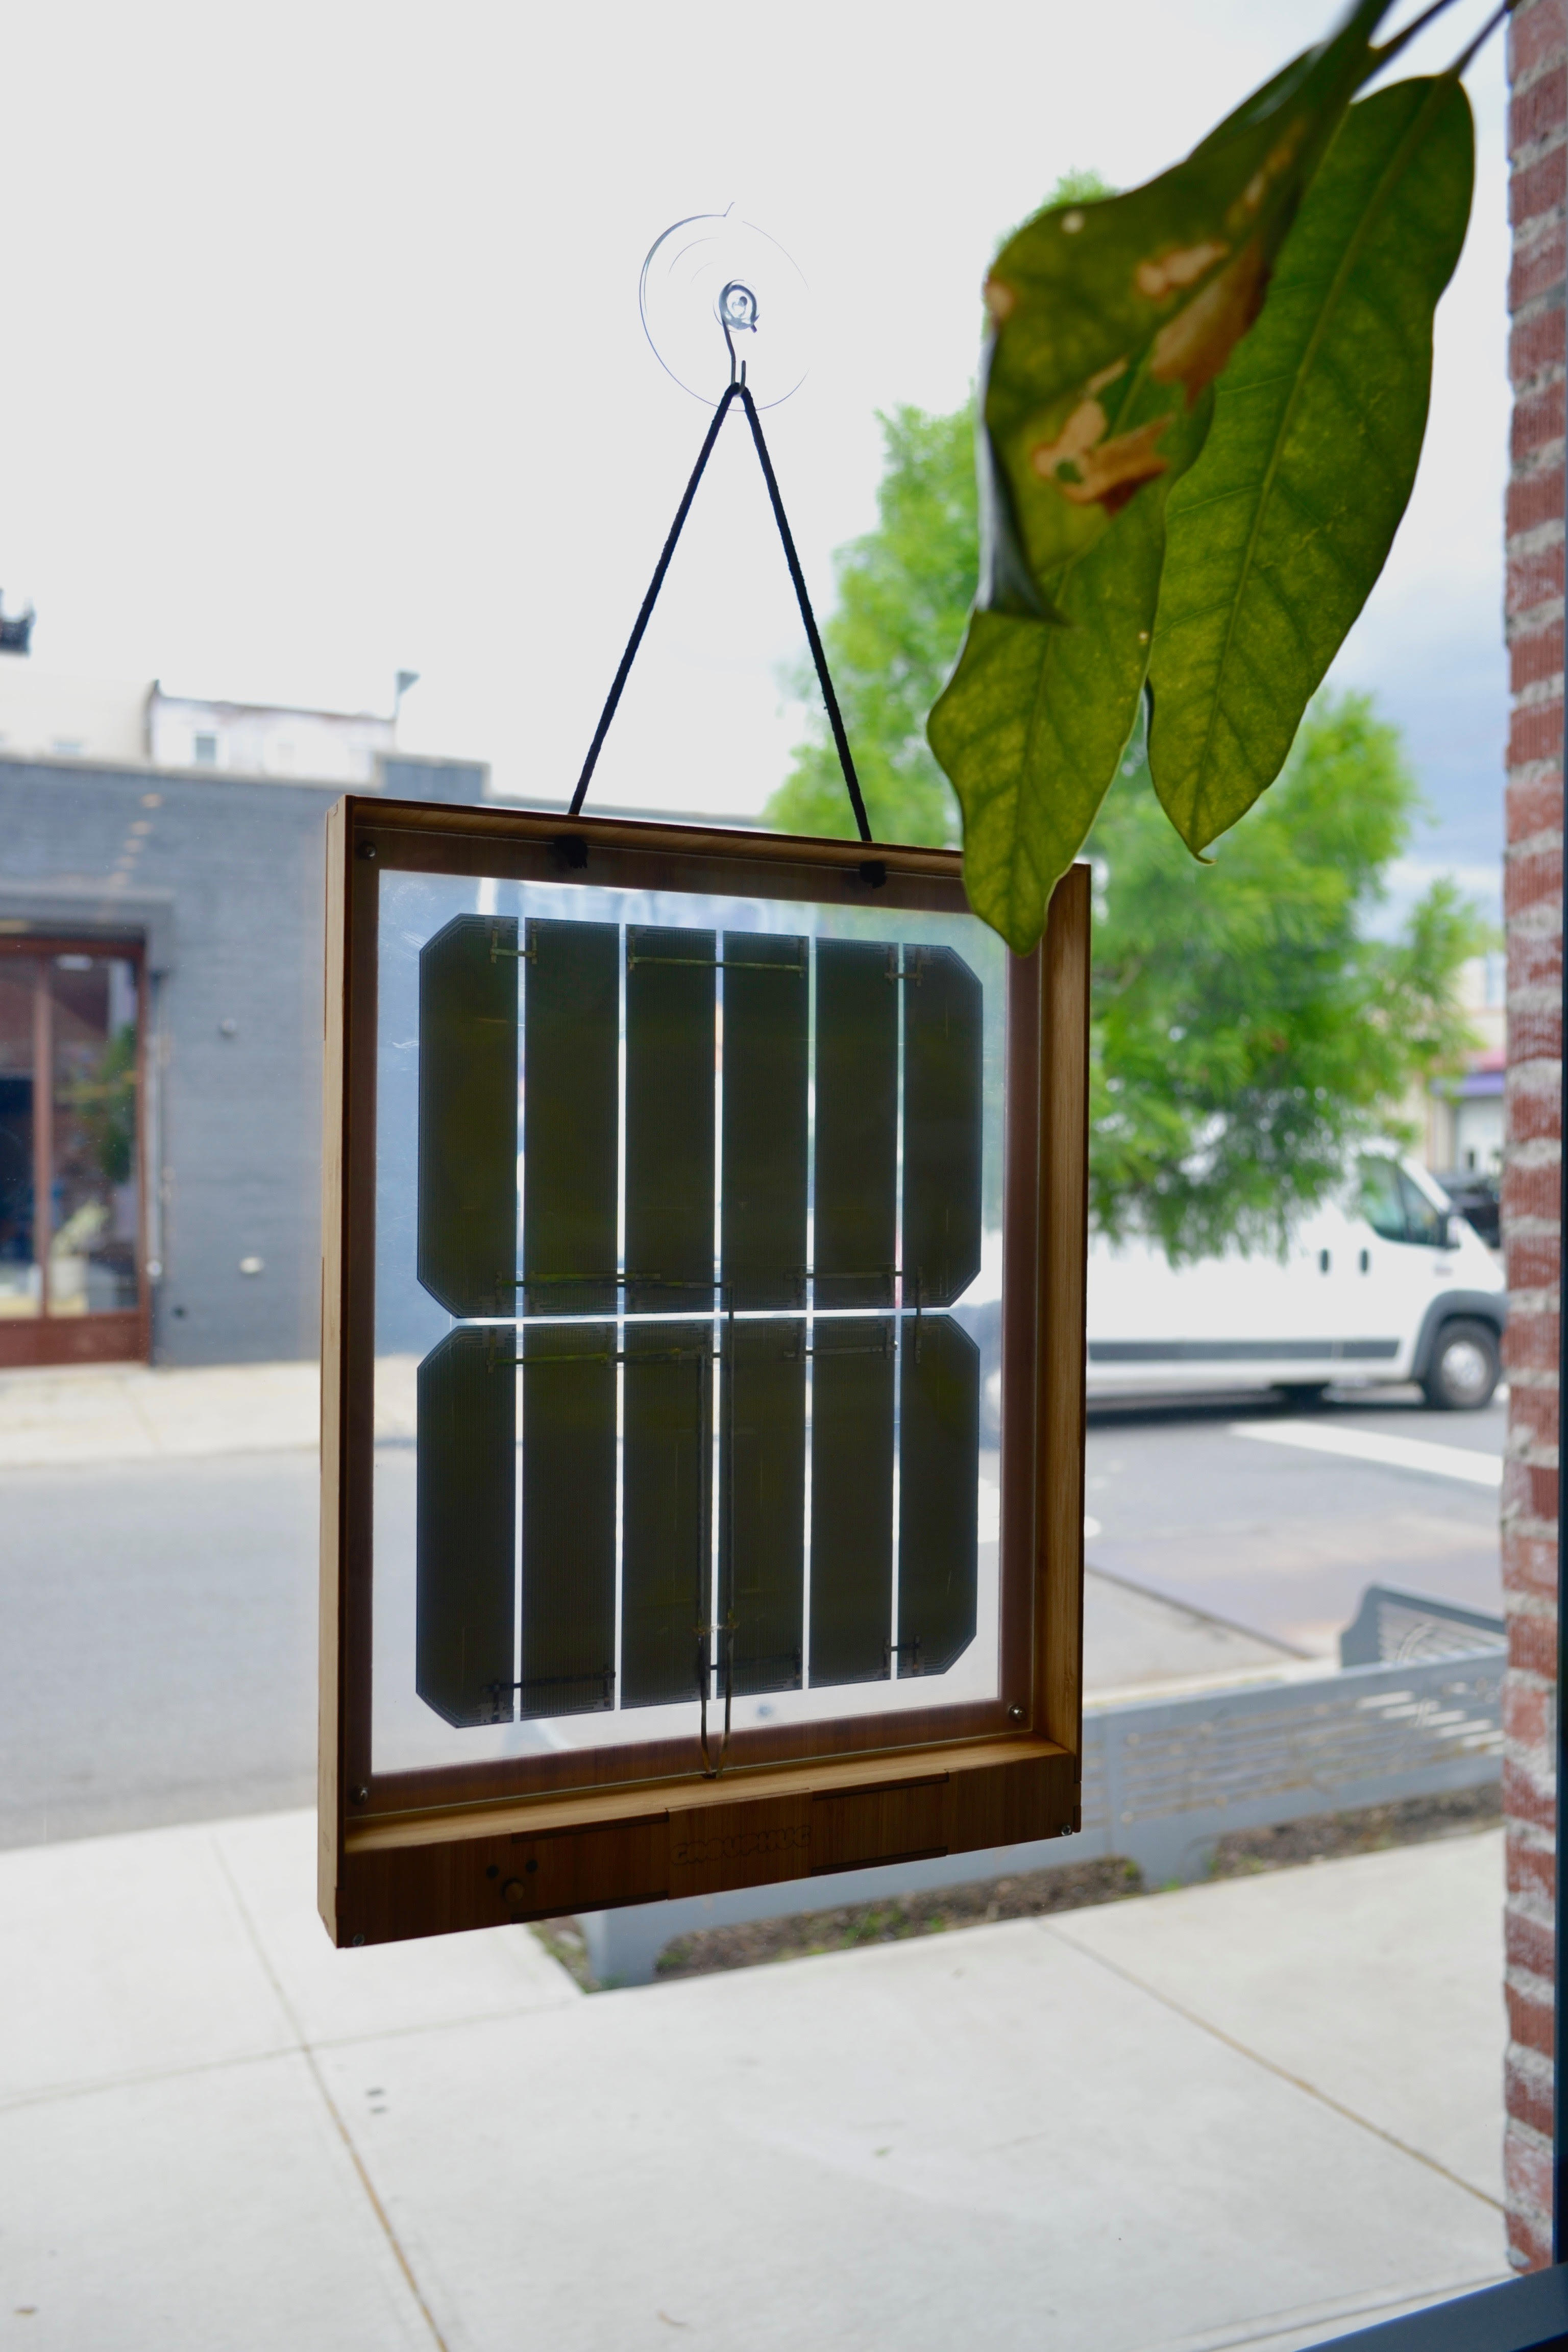 window-solar-charger